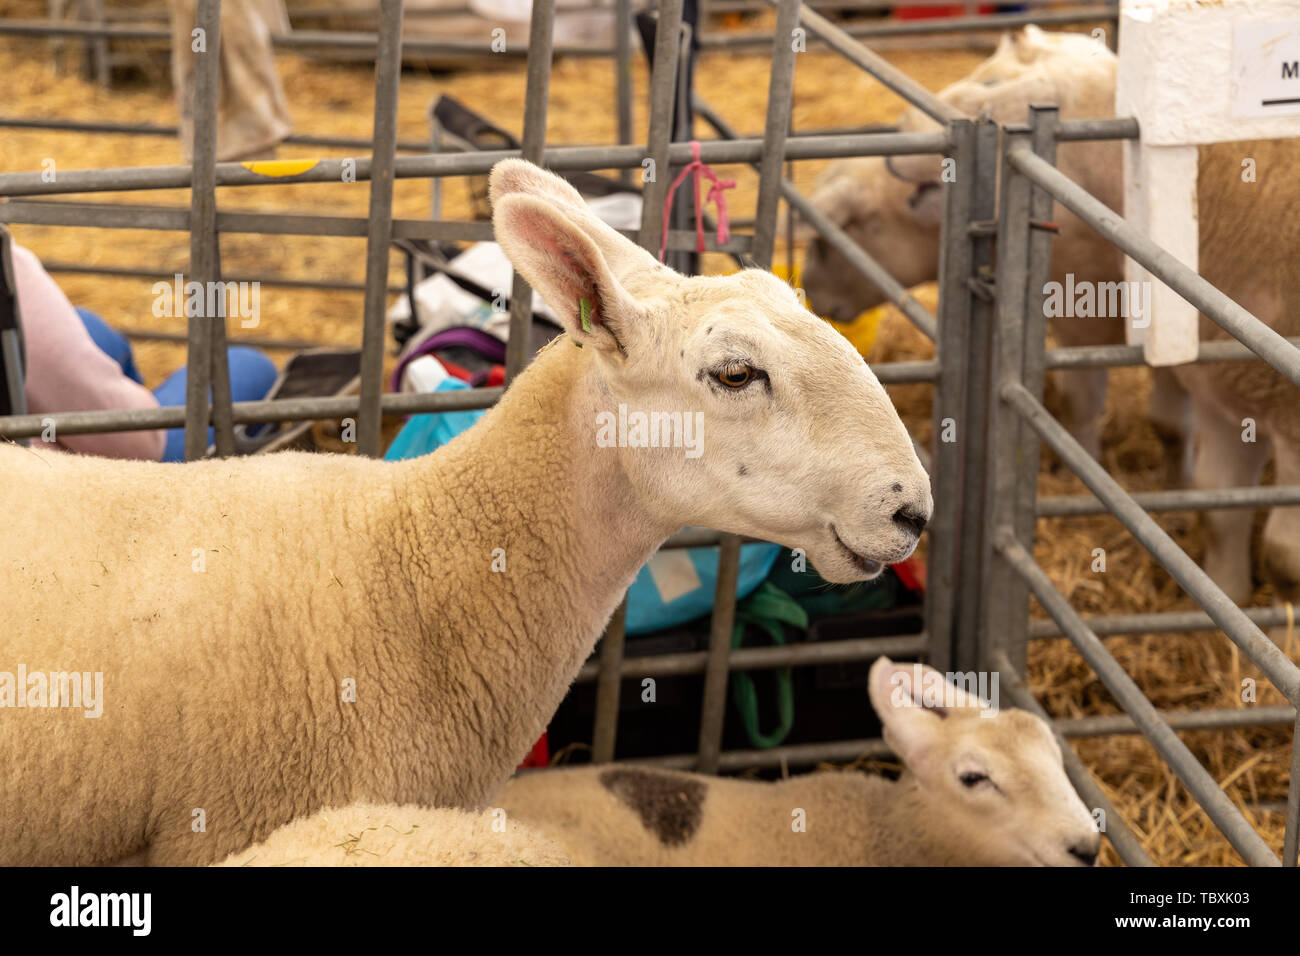 Sheep at the Devon County Show - Stock Image